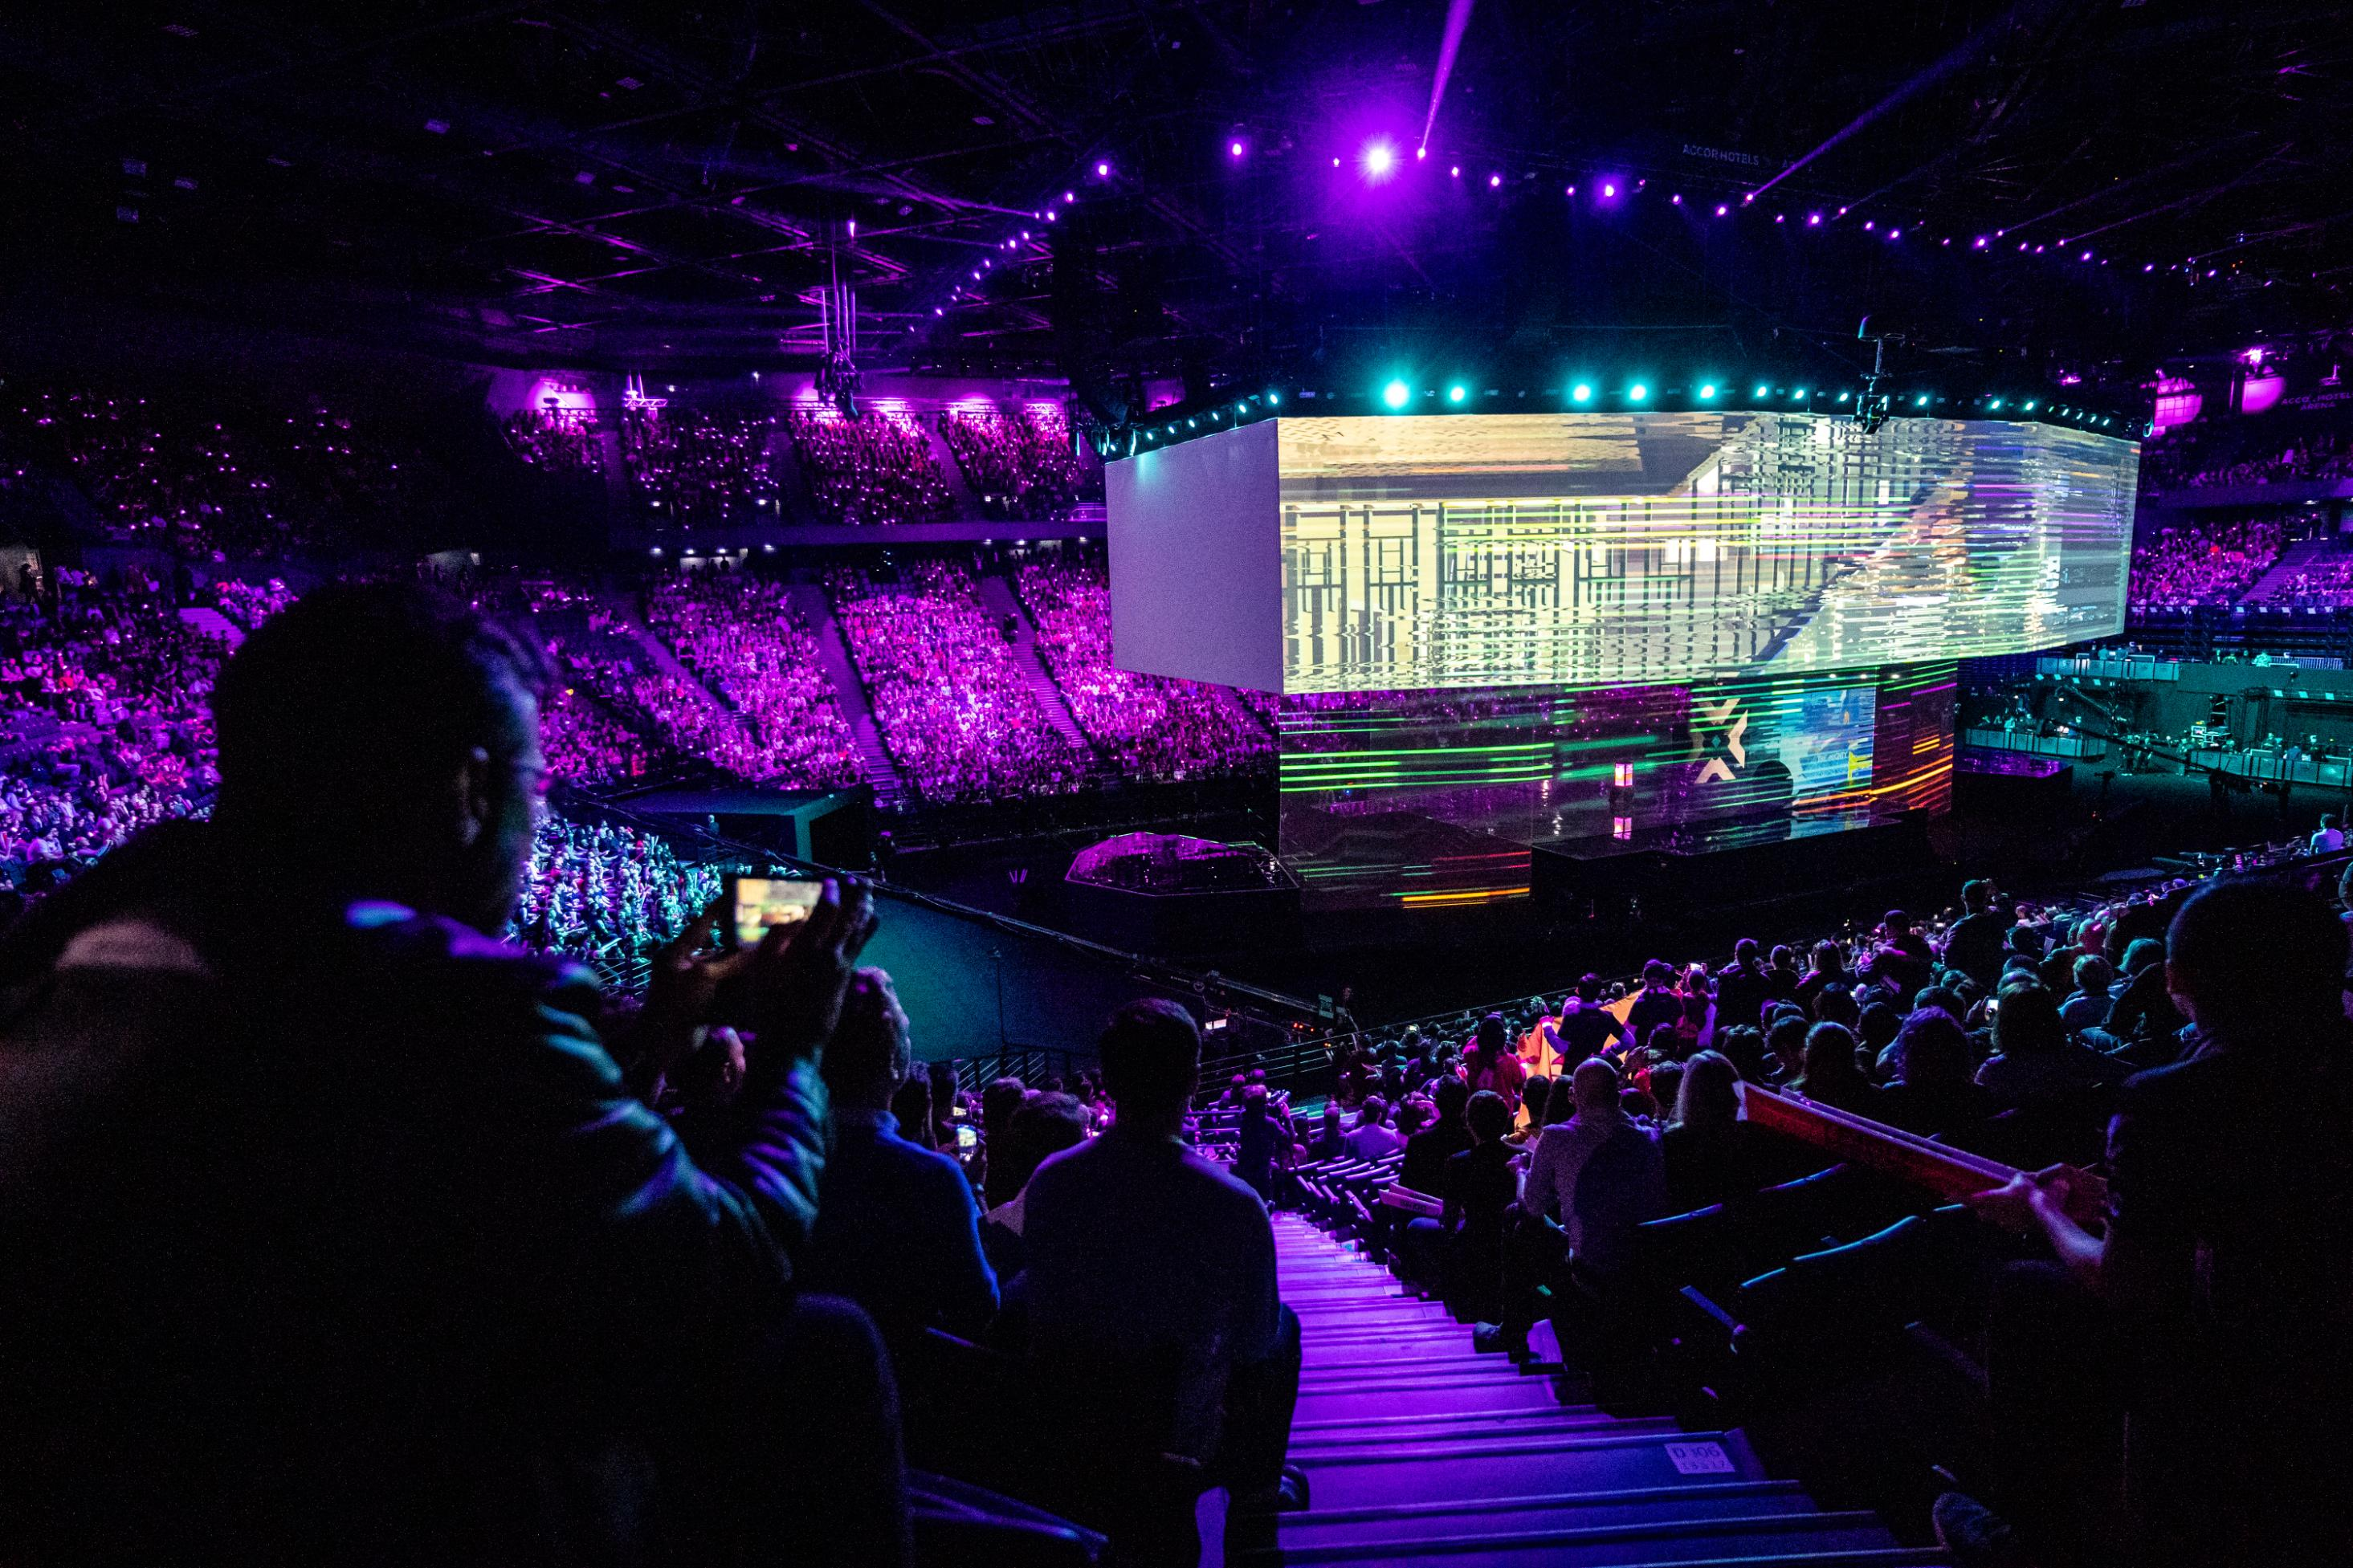 League of Legends is growing. Traditional sports better watch out.